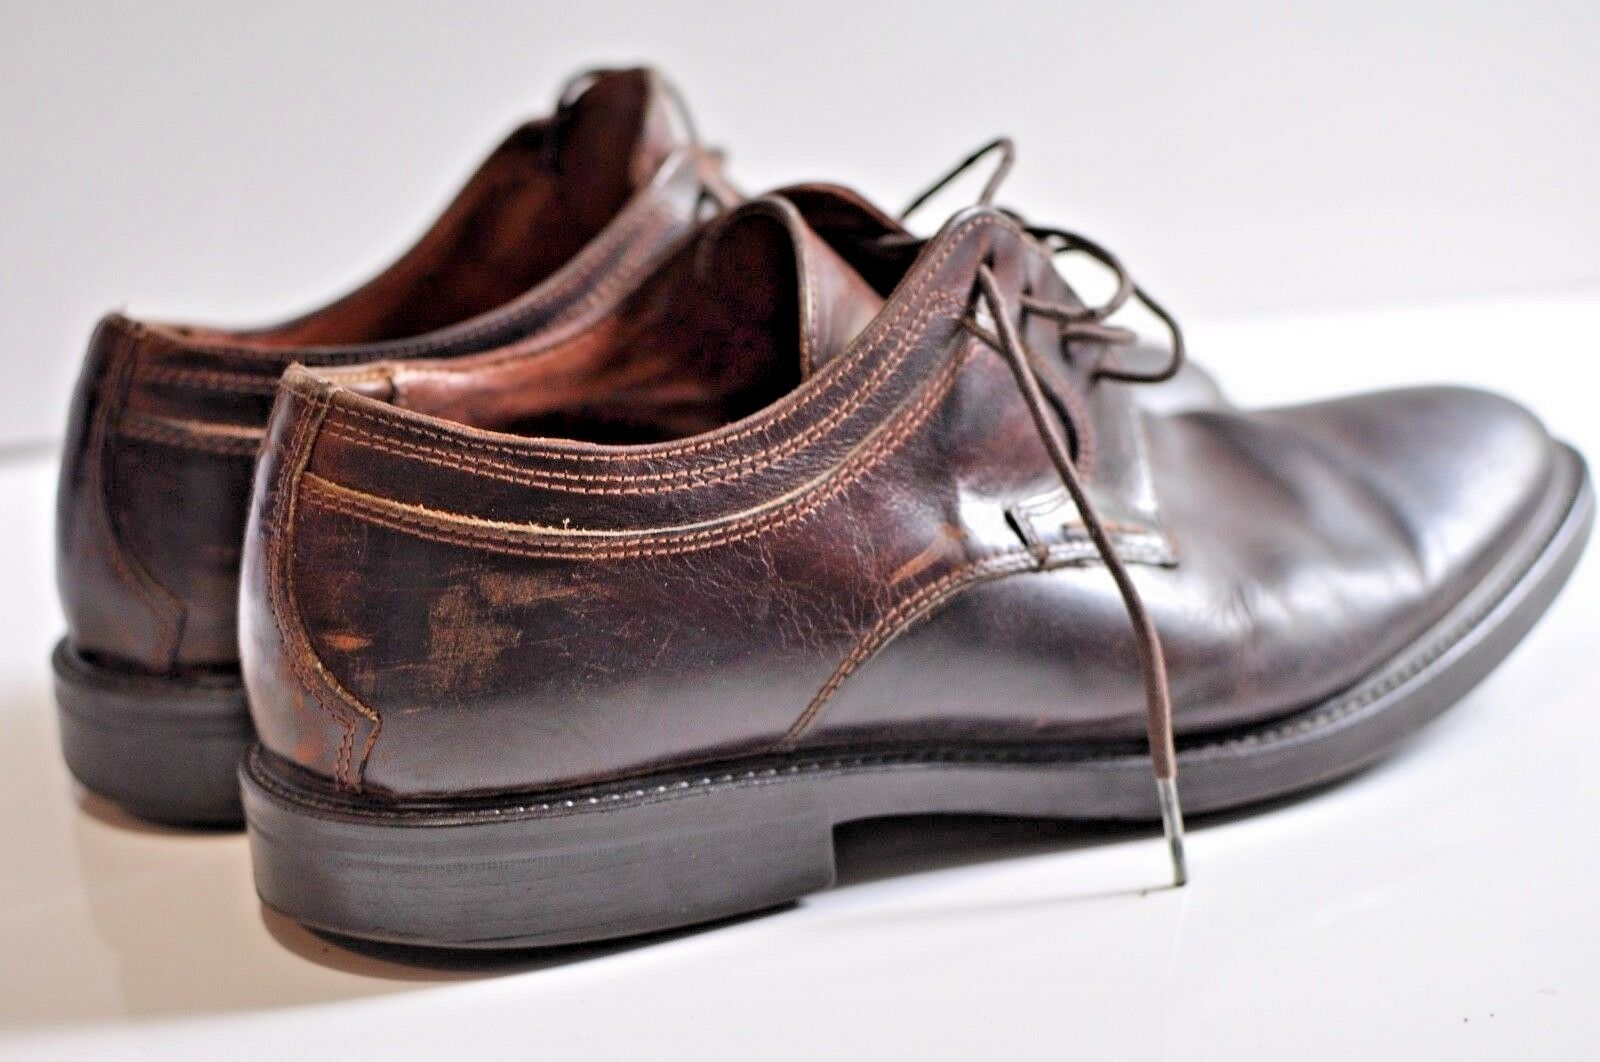 Johnston & Murphy Mens leather shoe size 11 made in Italy